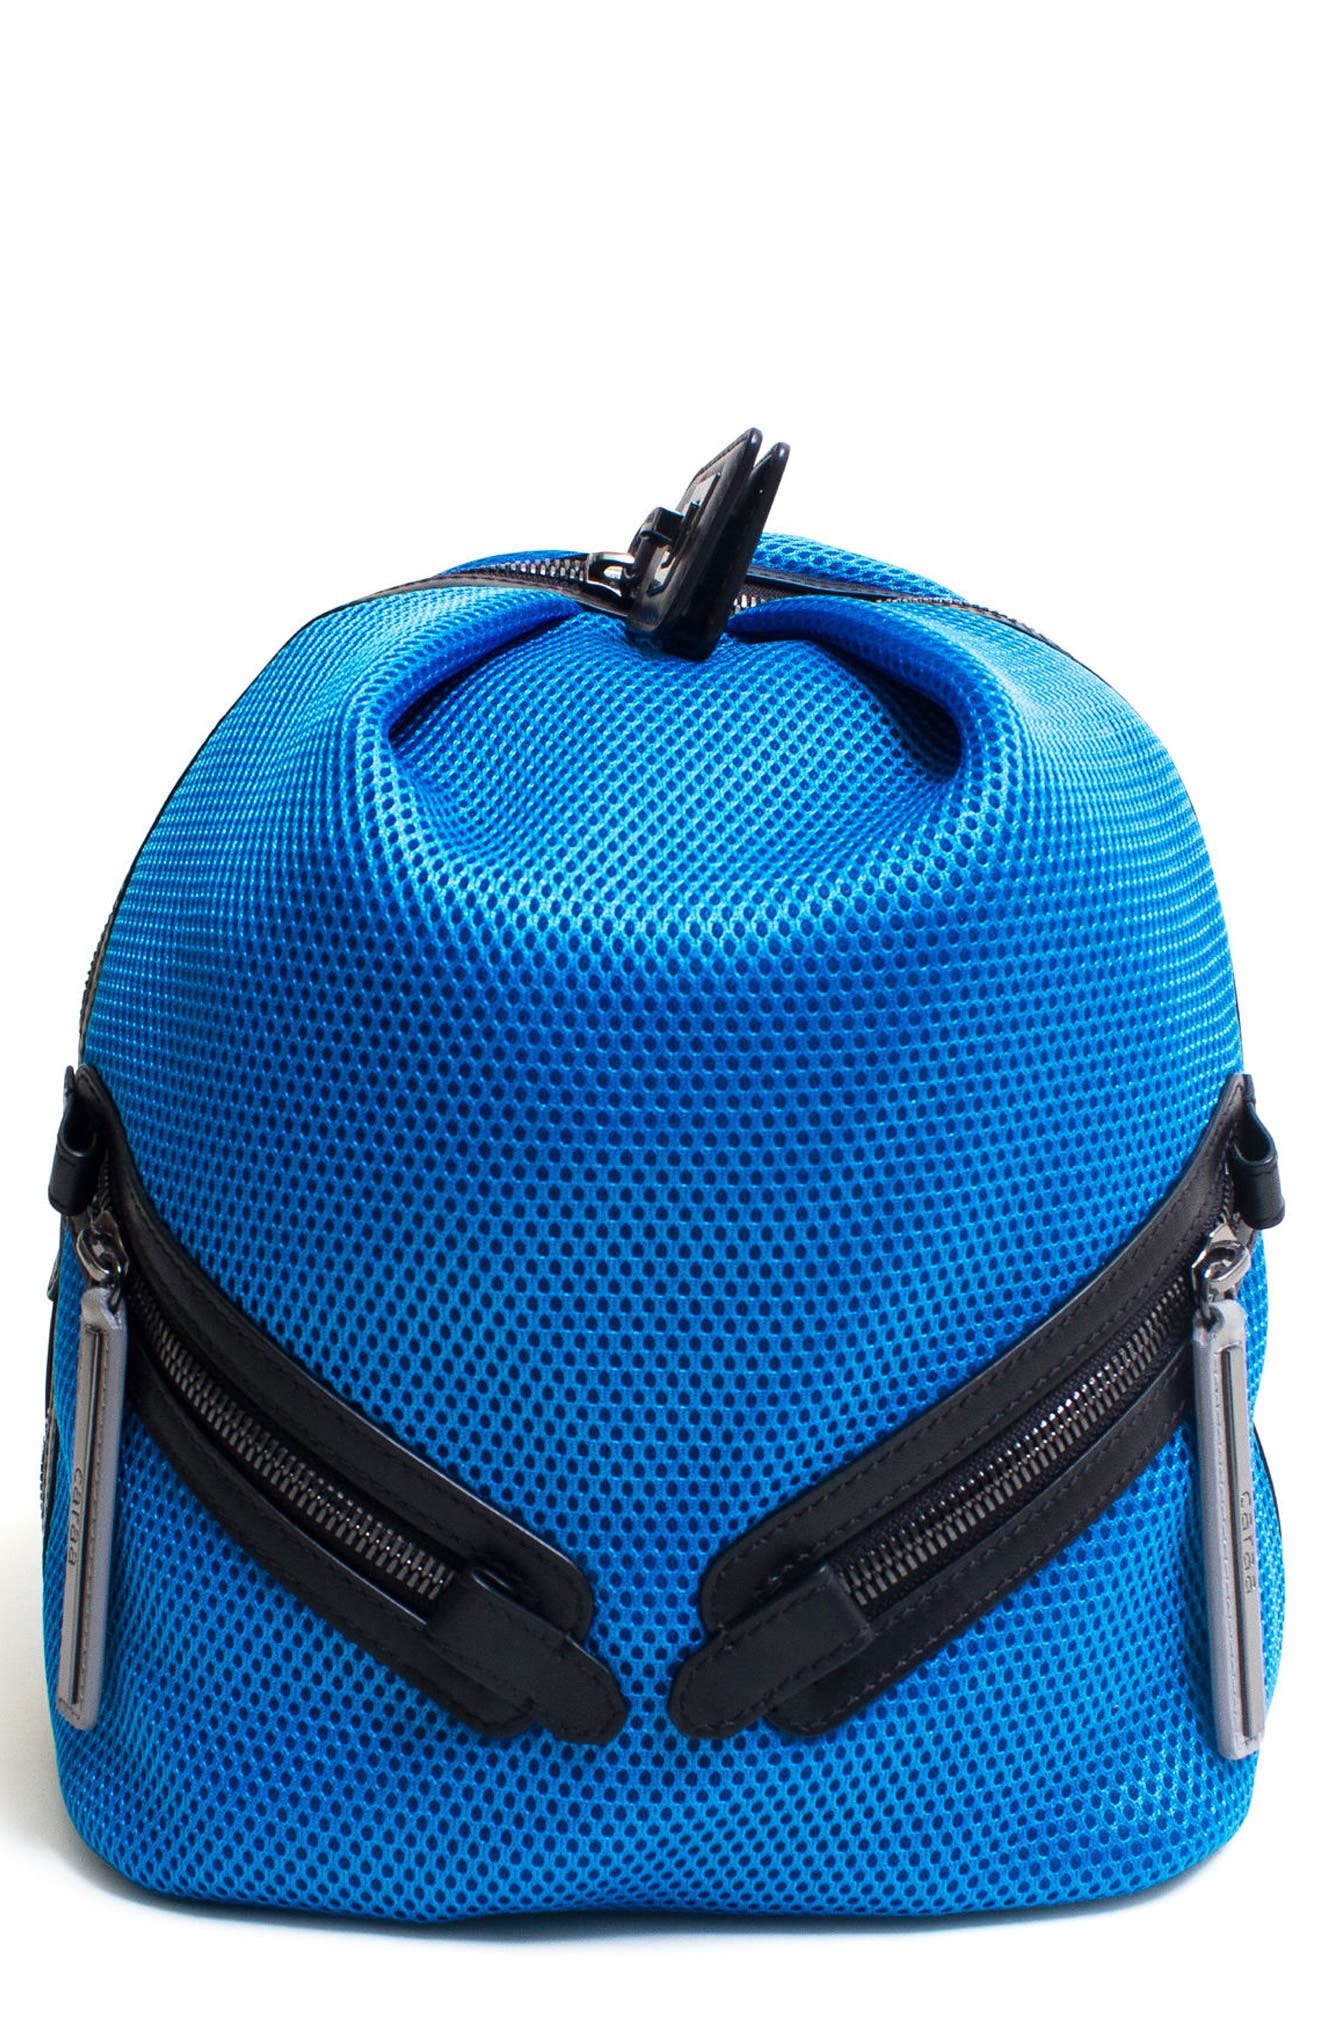 Dance 2 Mesh with Leather Trim Backpack,                             Main thumbnail 2, color,